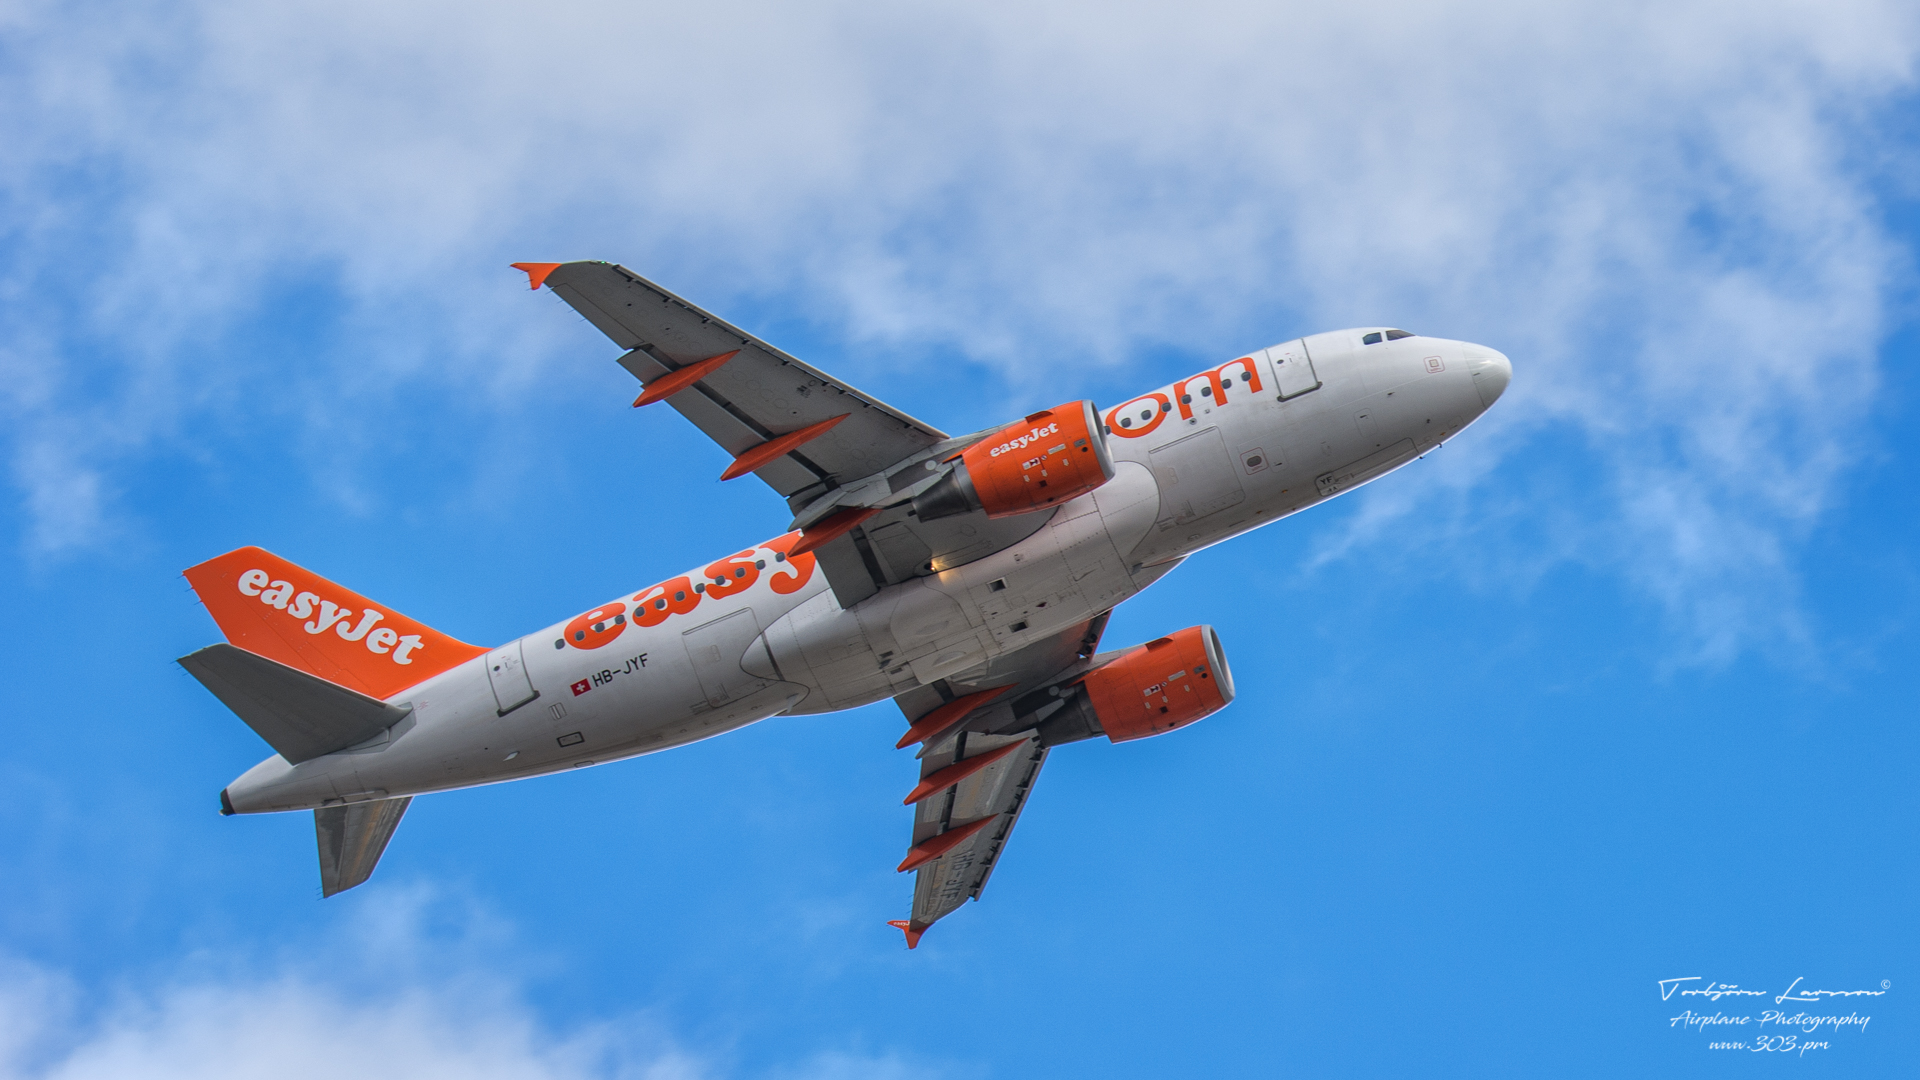 DSC_1540-EasyJet HB-JYF - Airbus A319-111